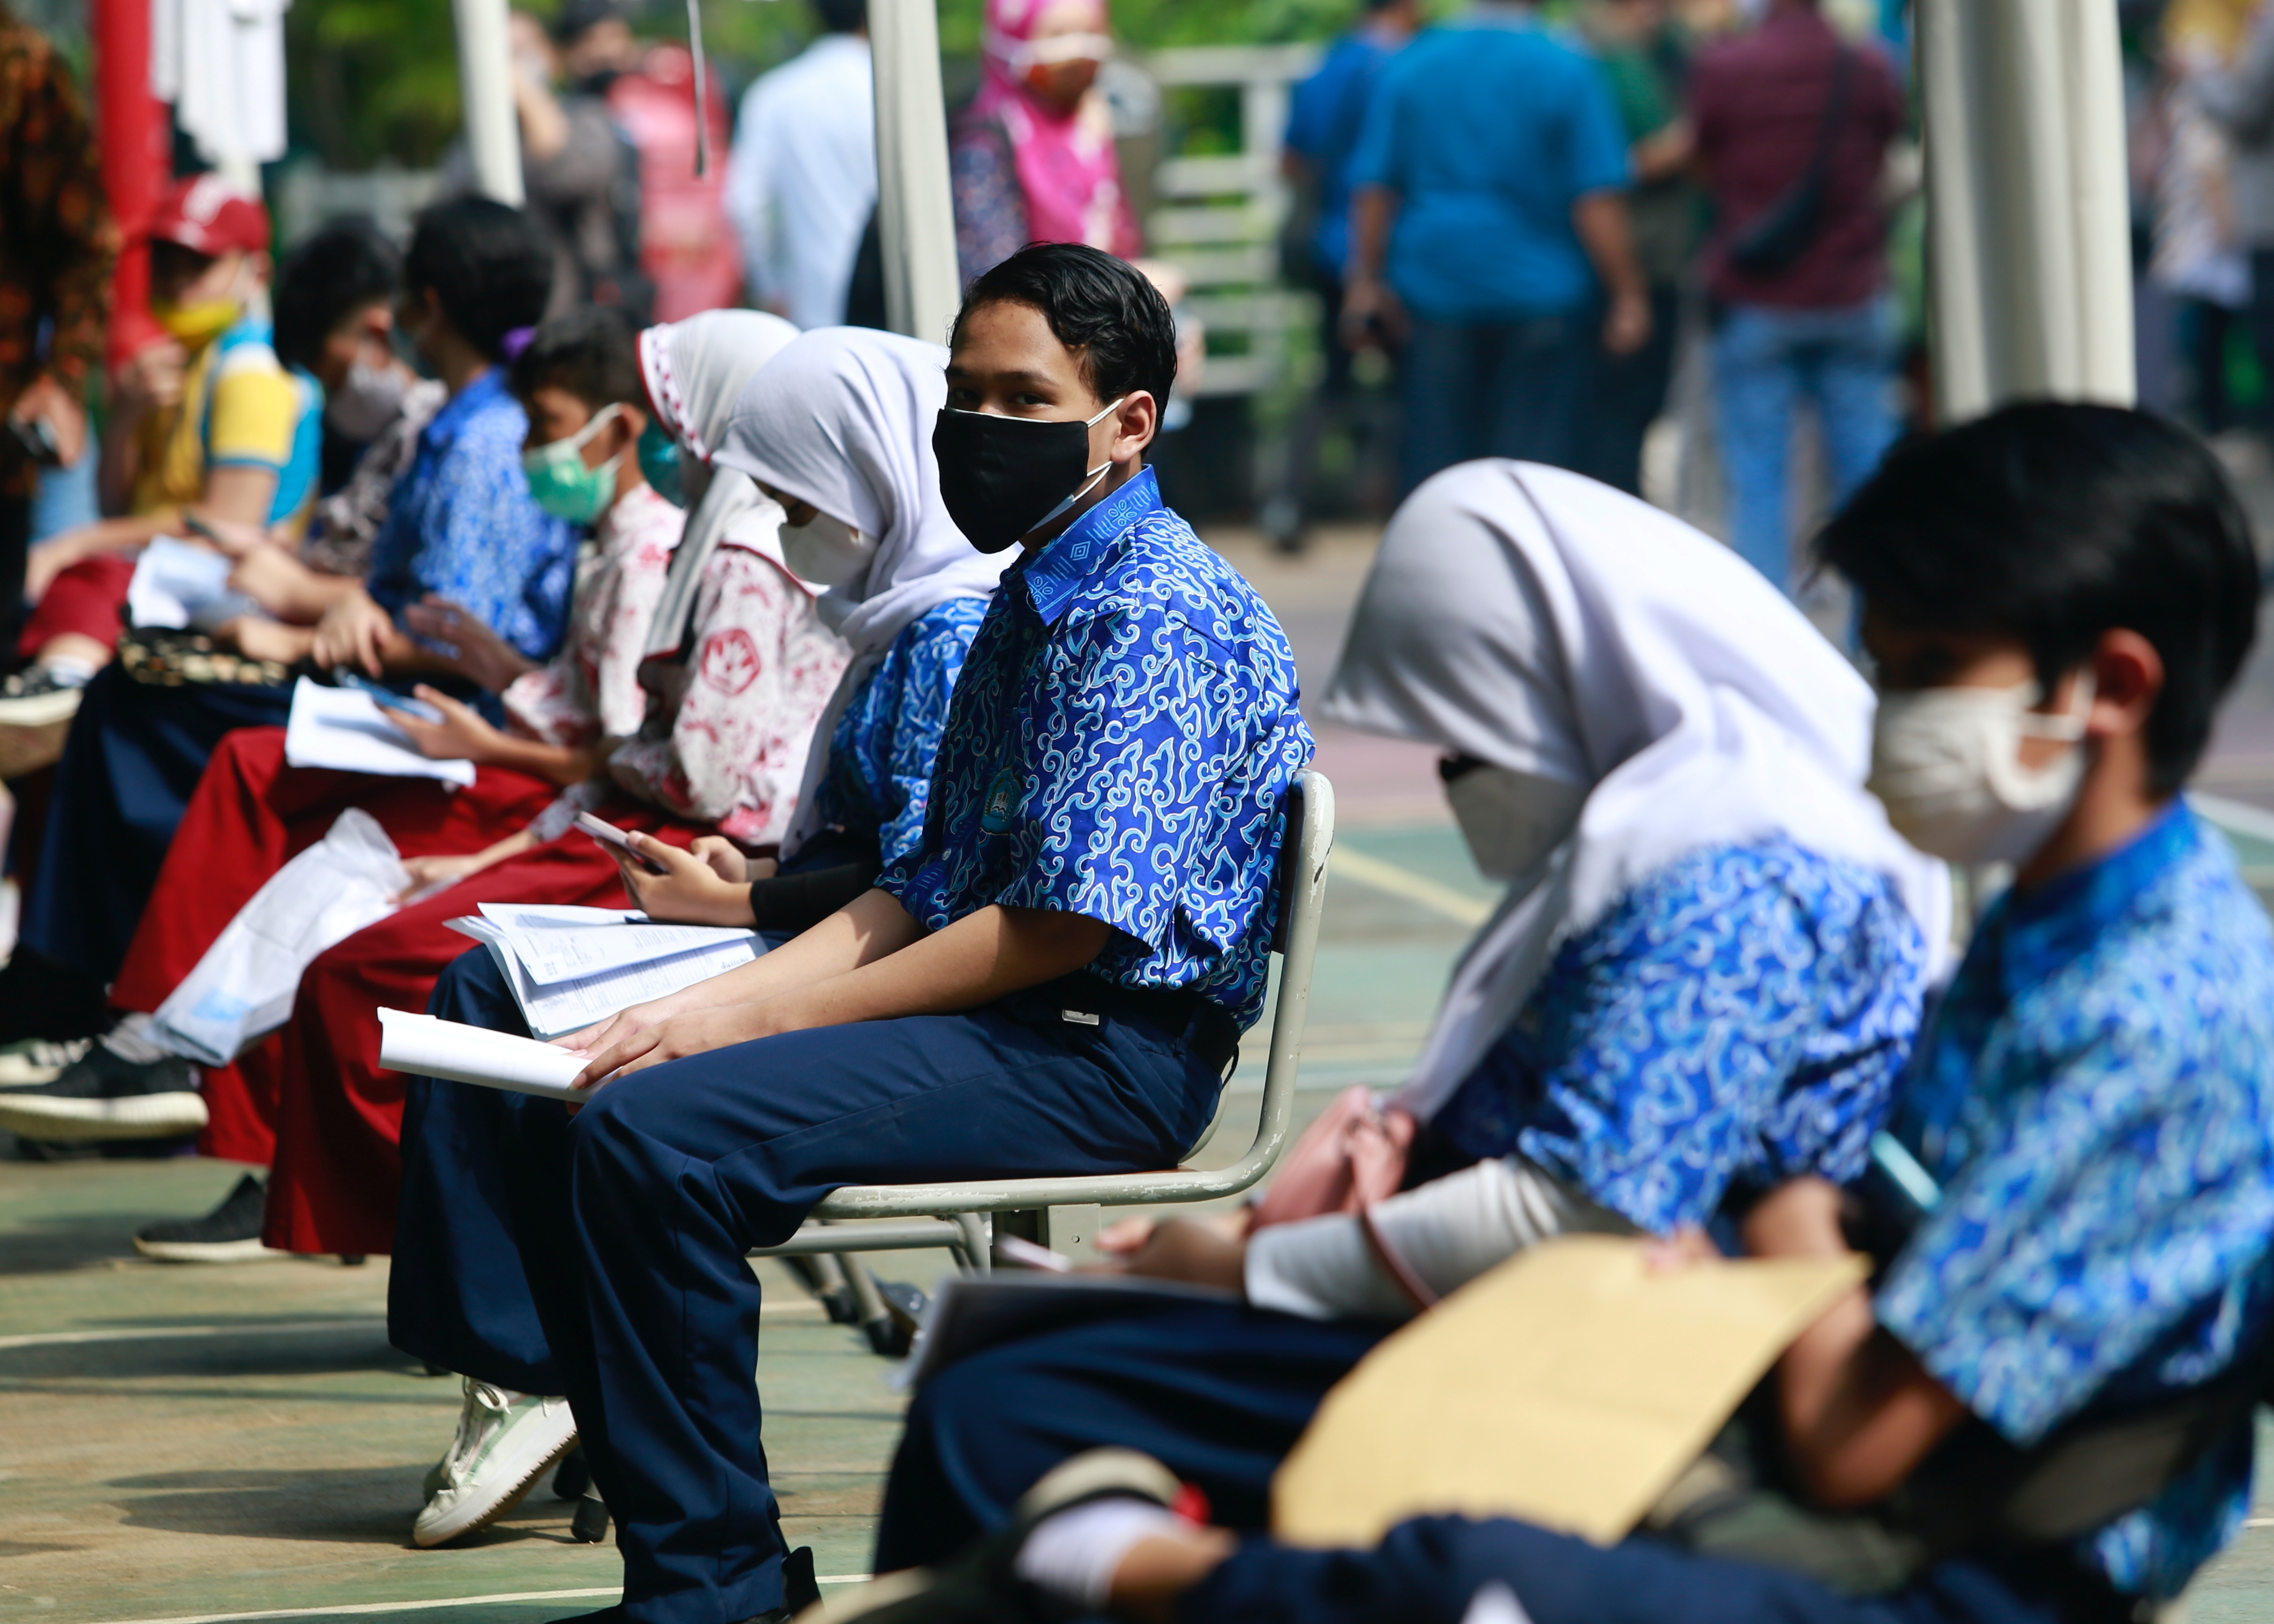 Students wearing protective face masks sit while waiting to receive their dose of the vaccine against the coronavirus disease (COVID-19), during a mass vaccination program for students at a school in Jakarta, Indonesia, July 15, 2021. REUTERS/Ajeng Dinar Ulfiana